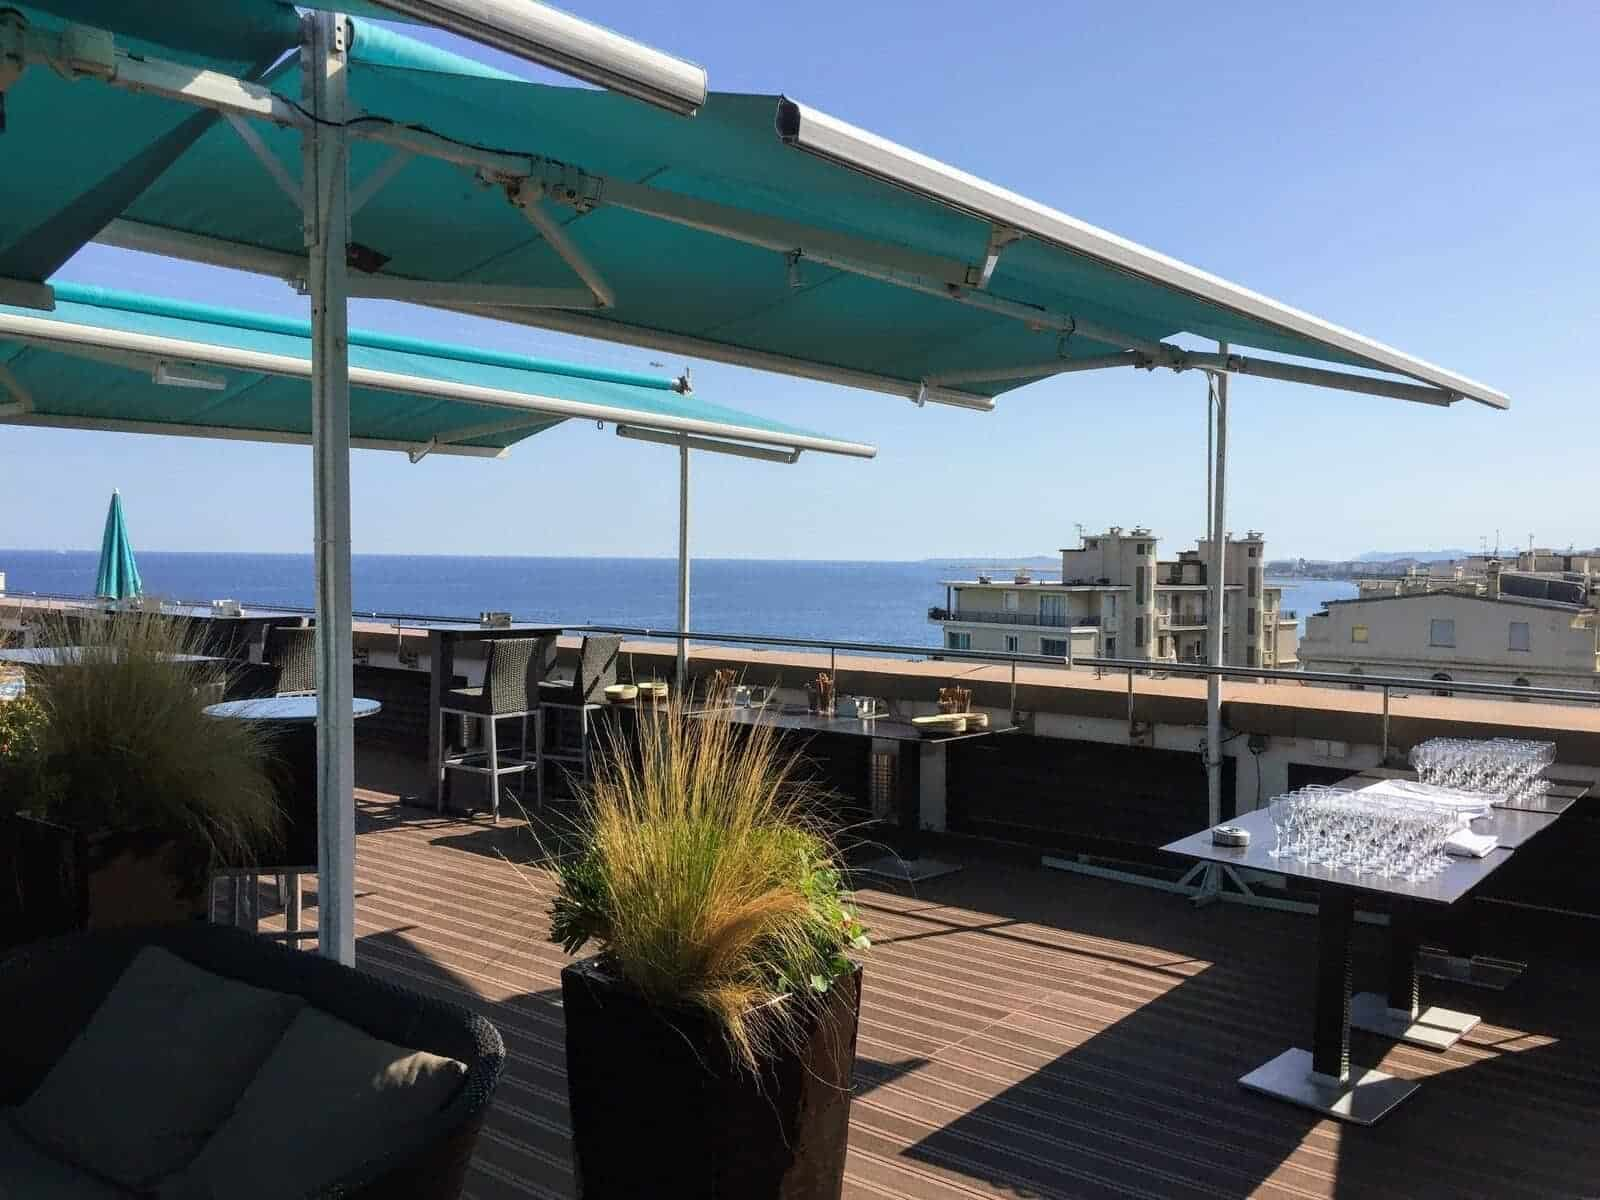 Toit Terrasse Hotel Nice Avis Sur L Ac Hotel By Marriott Nice France Milesopedia